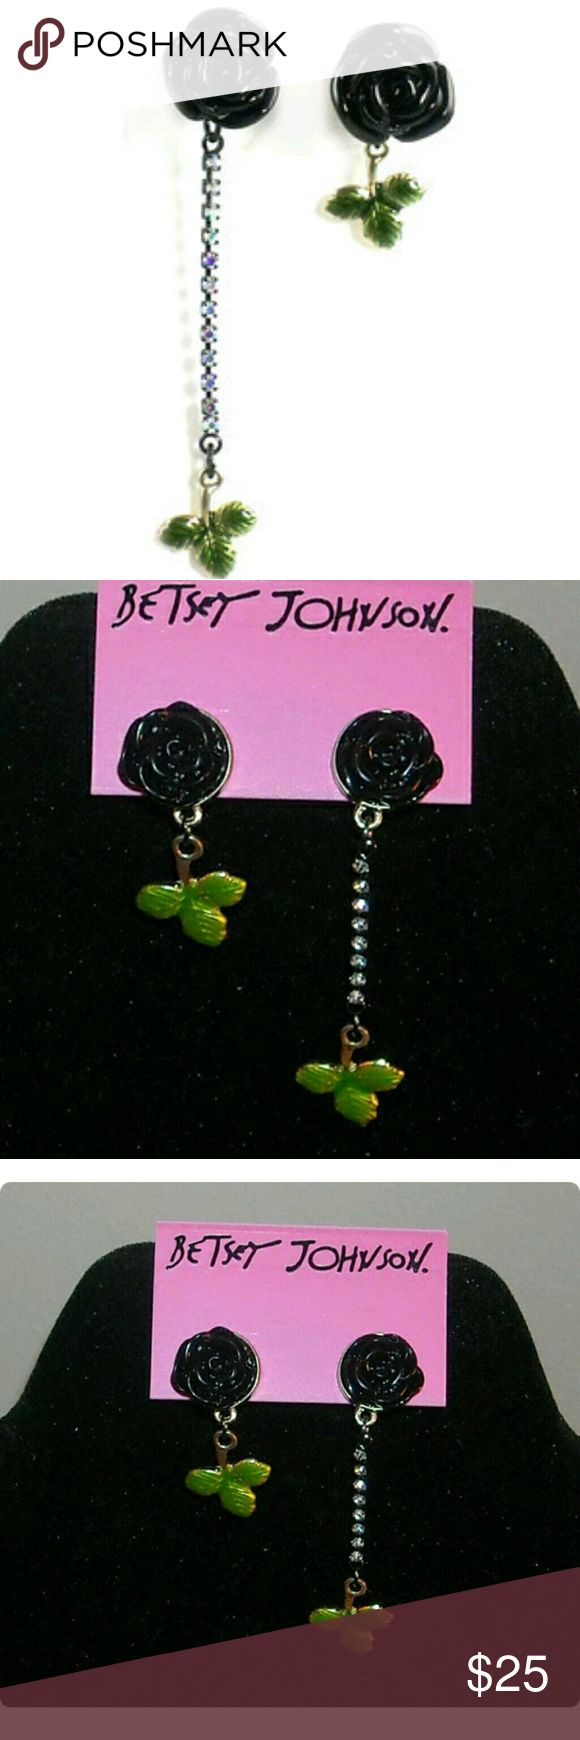 Betsey Johnson Dark Forest Mismatch earrings New - Betsey Johnson Dark Forest Mismatch earrings See photo for full description Hard to find and Guaranteed Authentic!! Betsey Johnson Jewelry Earrings